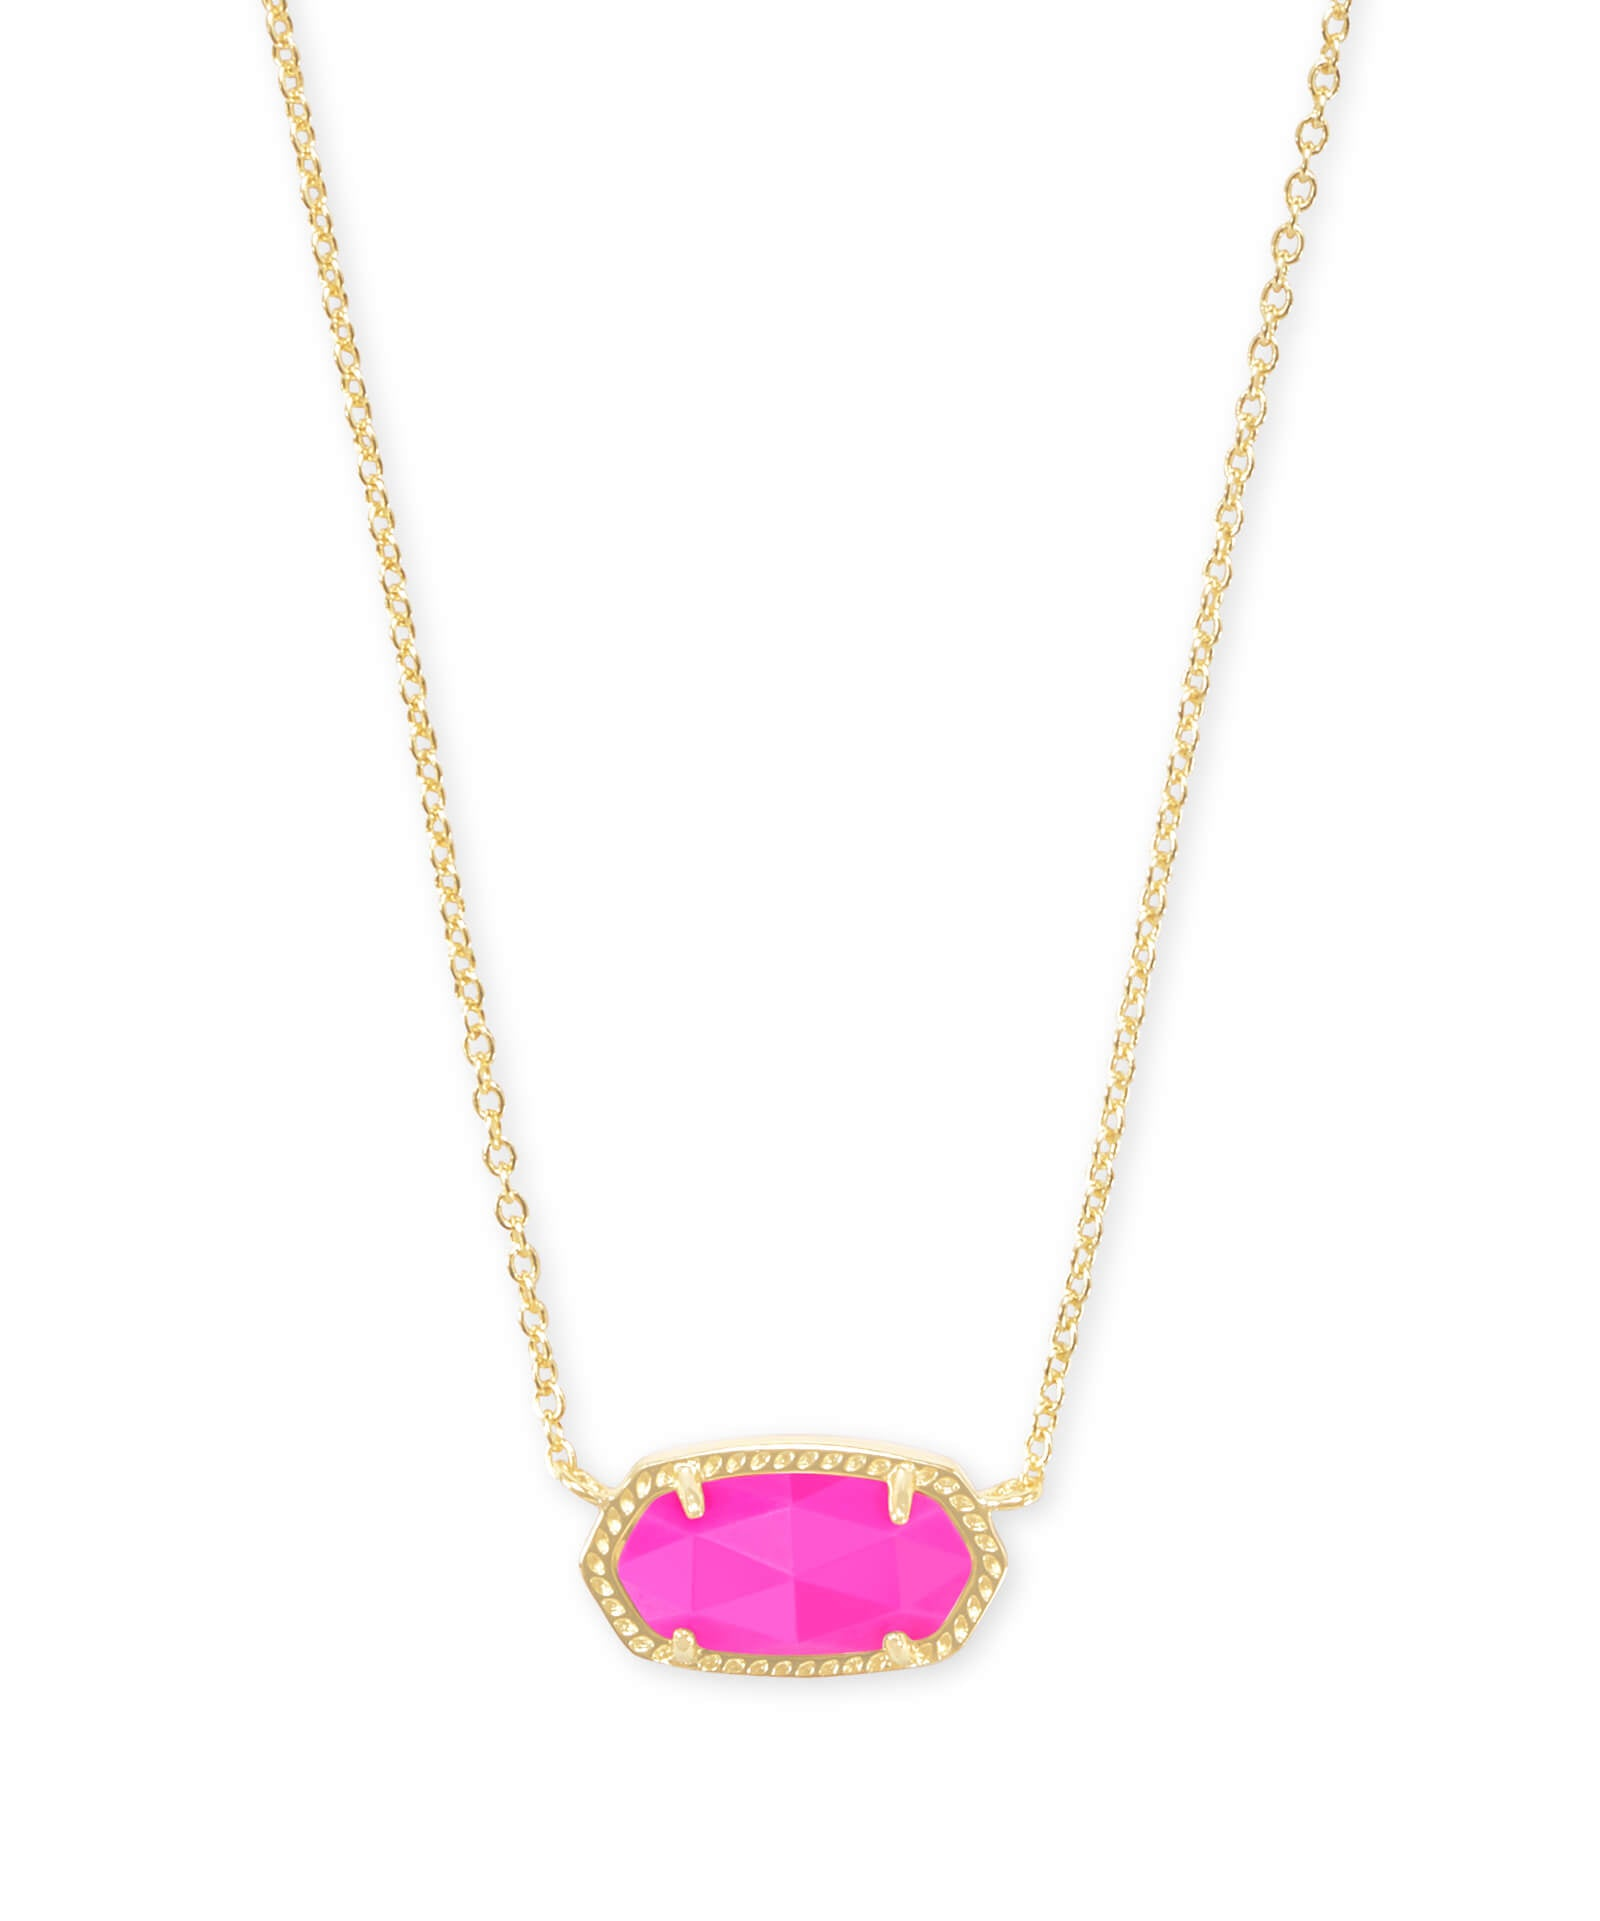 Elisa Necklace in Magenta Pink